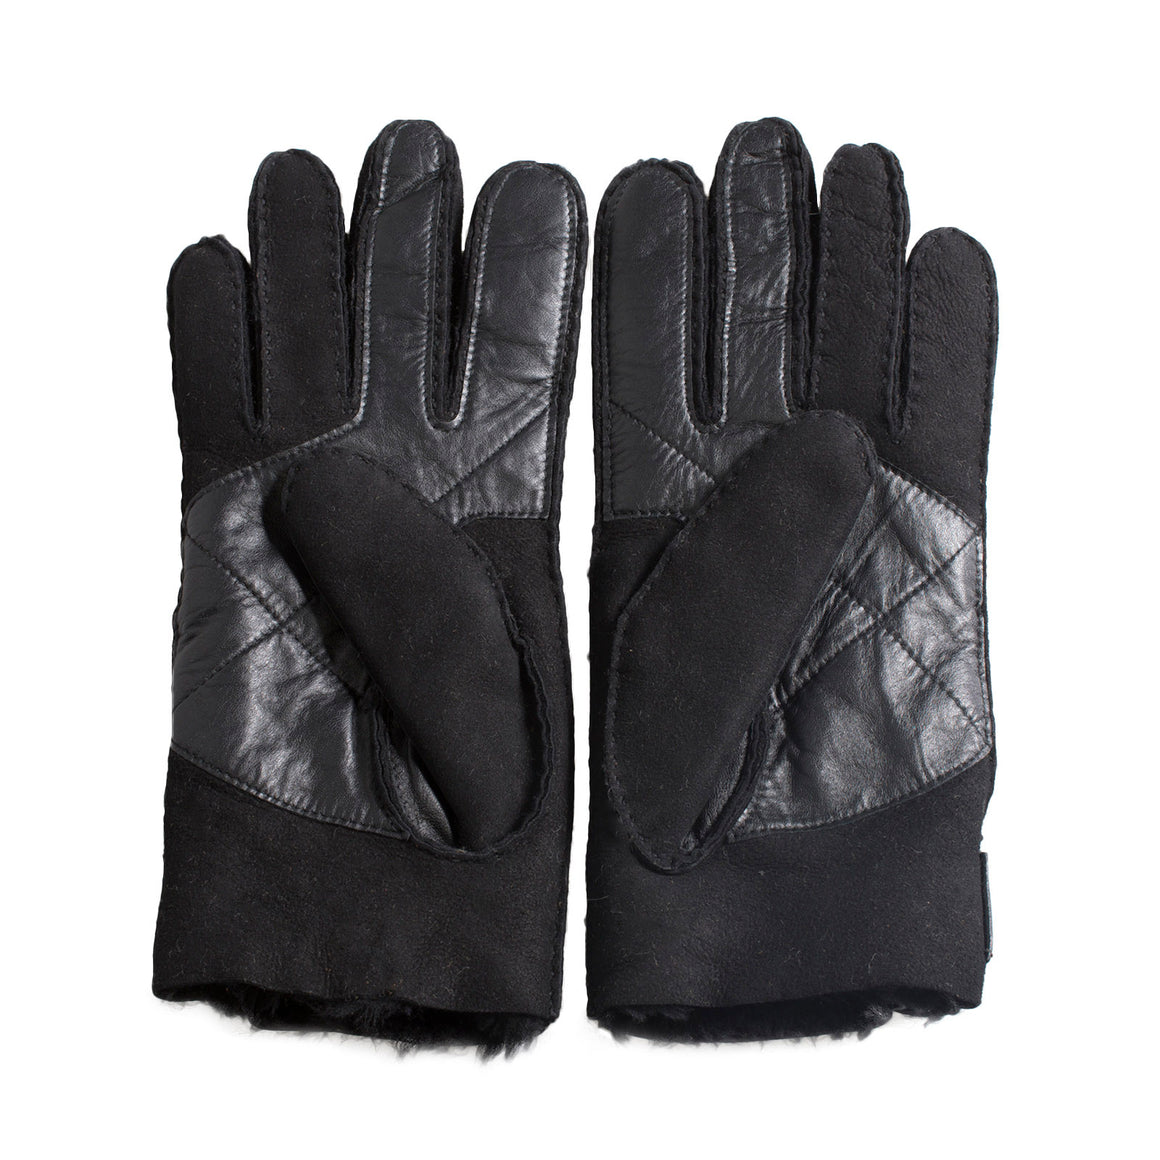 UGG Sheepskin Snap Tab Black Gloves - Men's